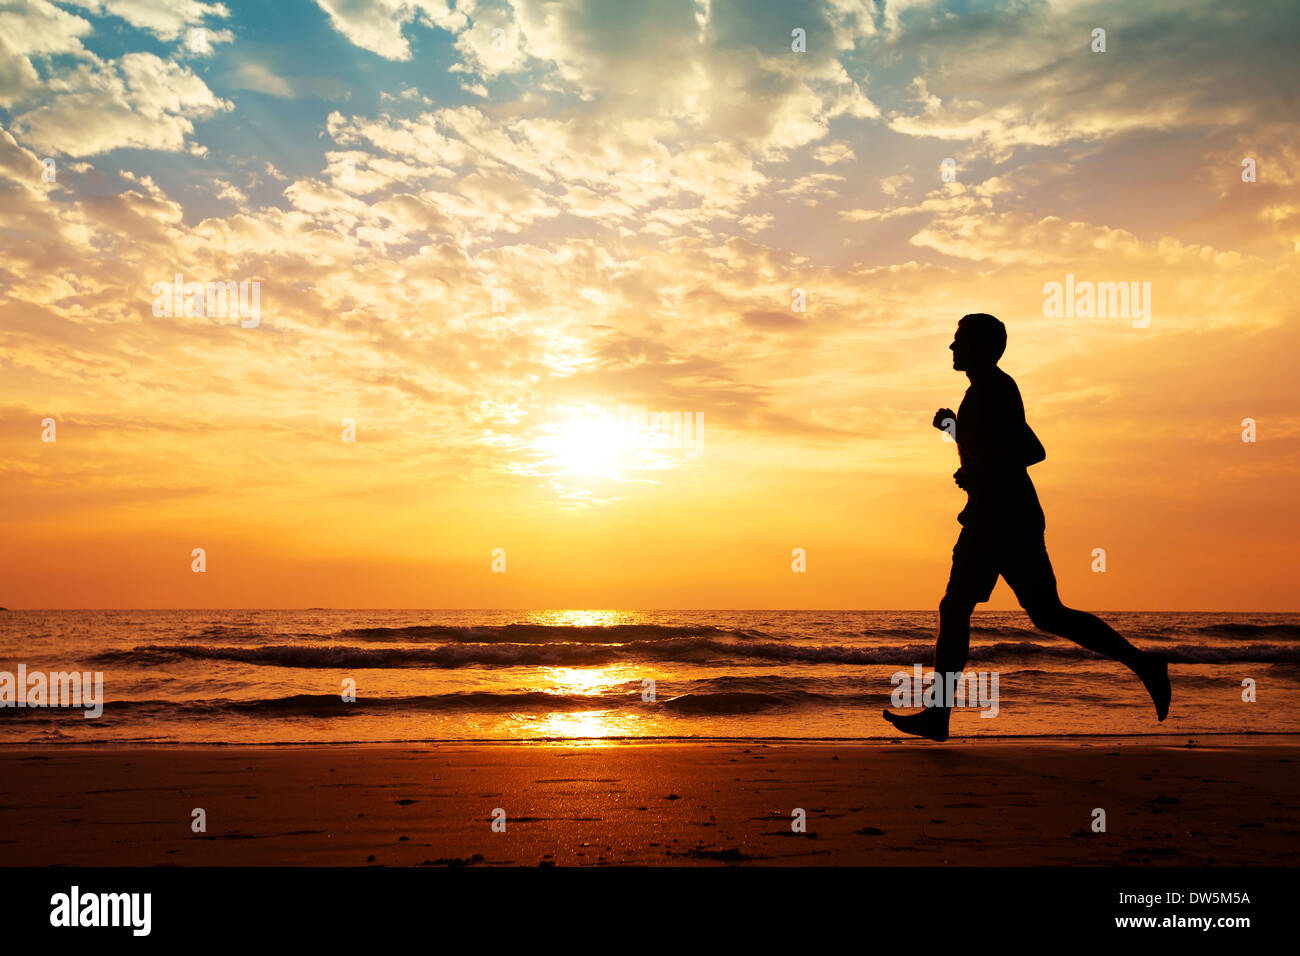 silhouette of man running on the beach at sunset - Stock Image